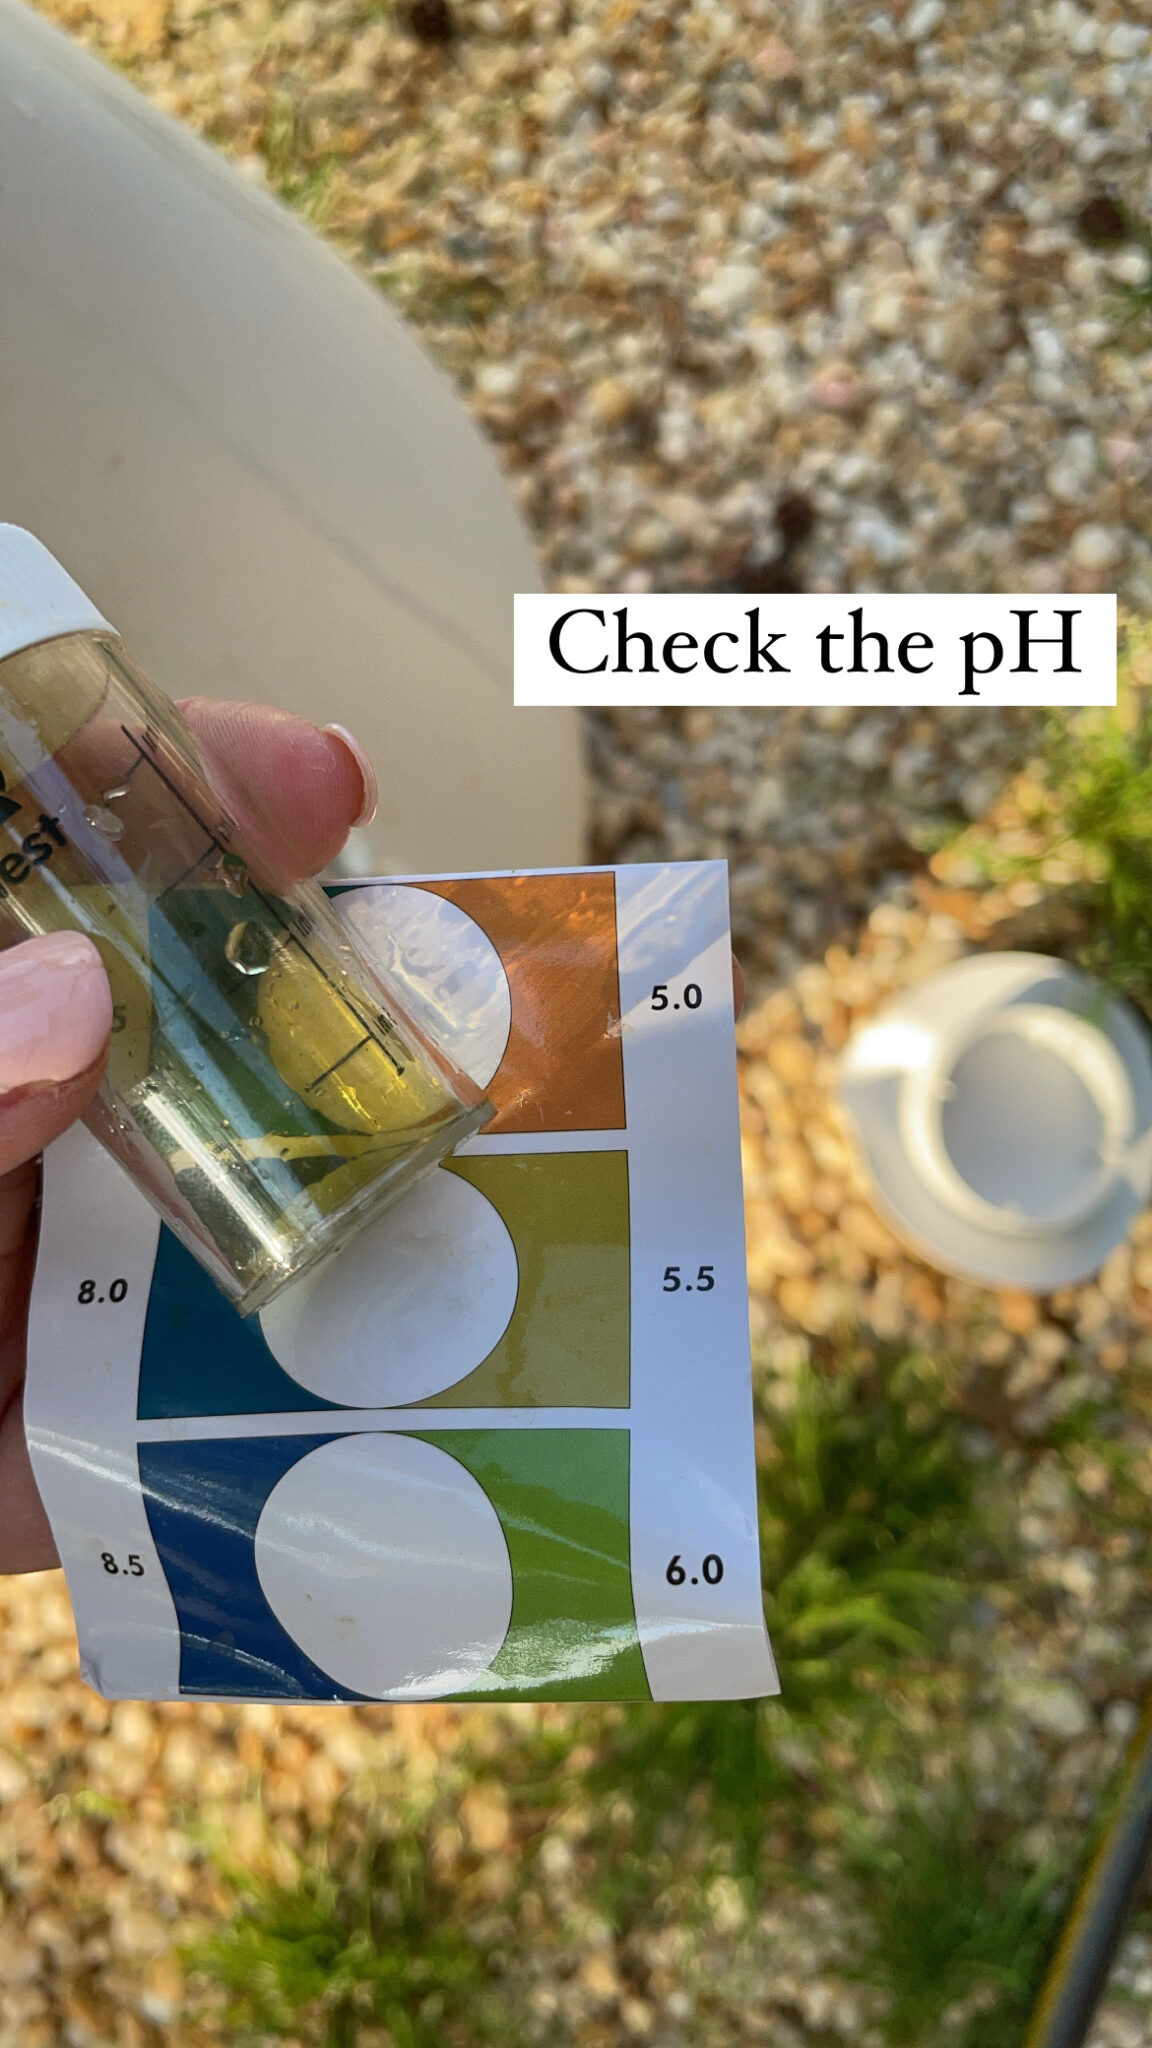 easy hydroponic garden, featured by top Atlanta lifestyle blogger, Moderately High Maintenance | Hydroponic Garden by popular Atlanta lifestyle blog, Moderately High Maintenance: image of a woman checking the pH level of a water sample.